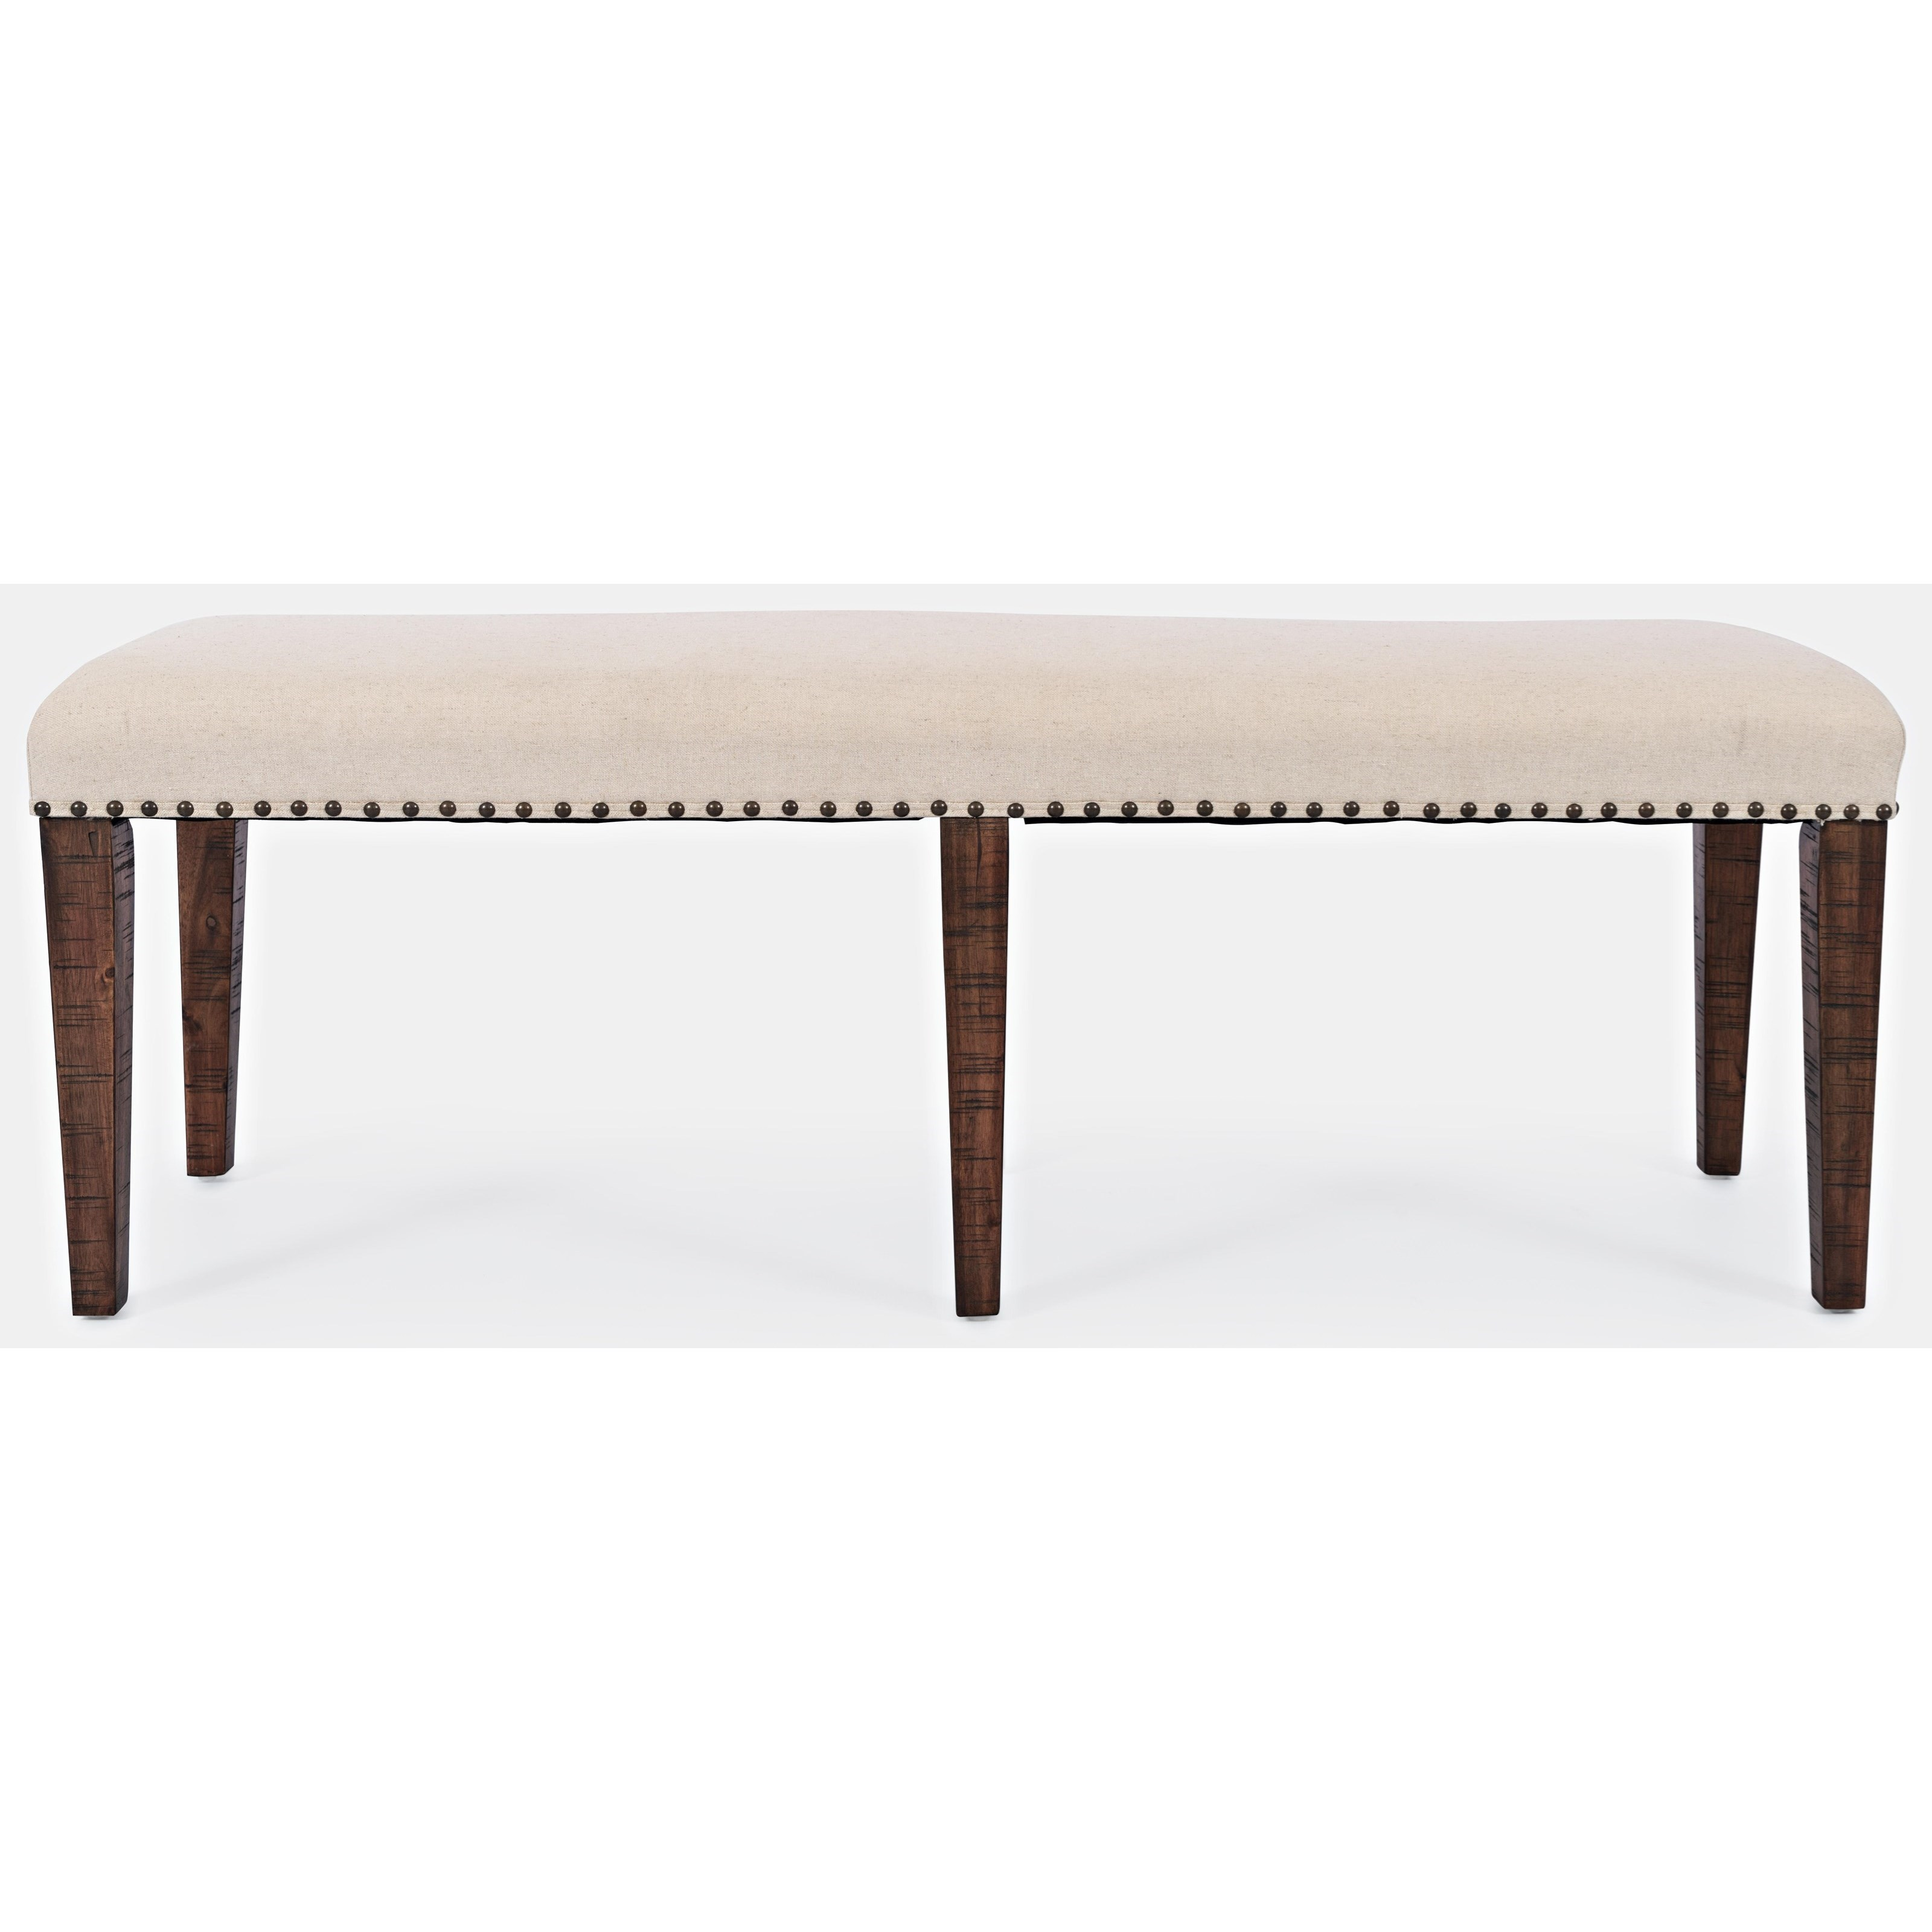 Fairview Backless Dining Bench by Jofran at Jofran